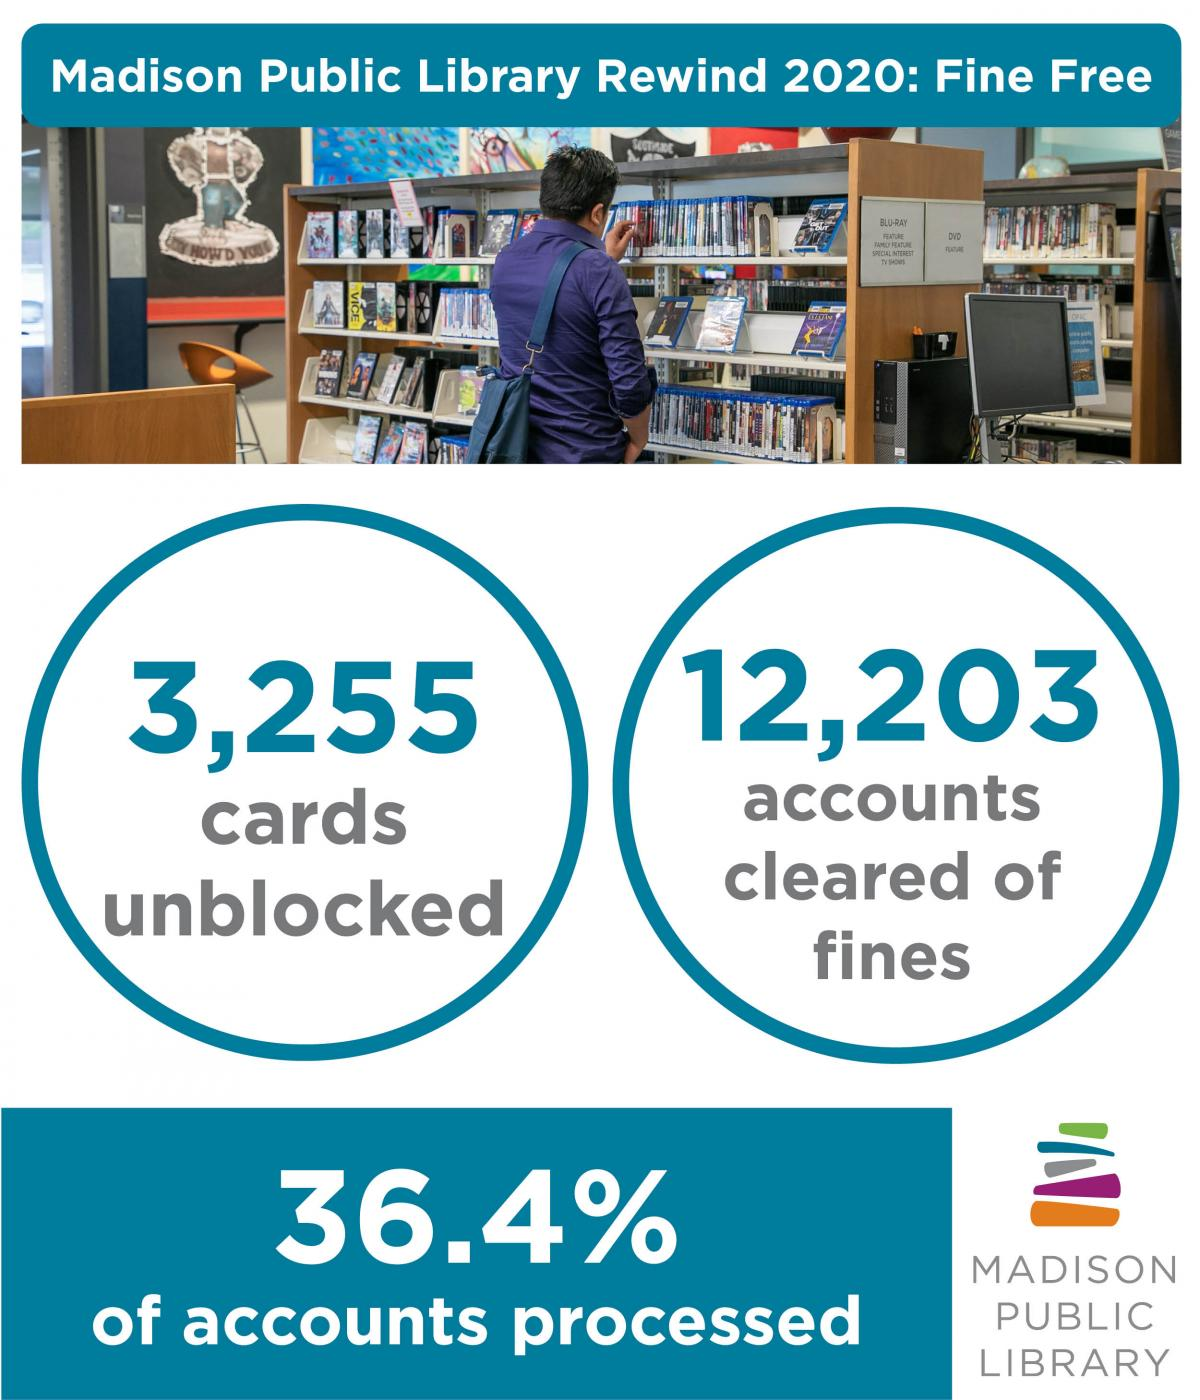 2020 Fine Free stats from Madison Public Library